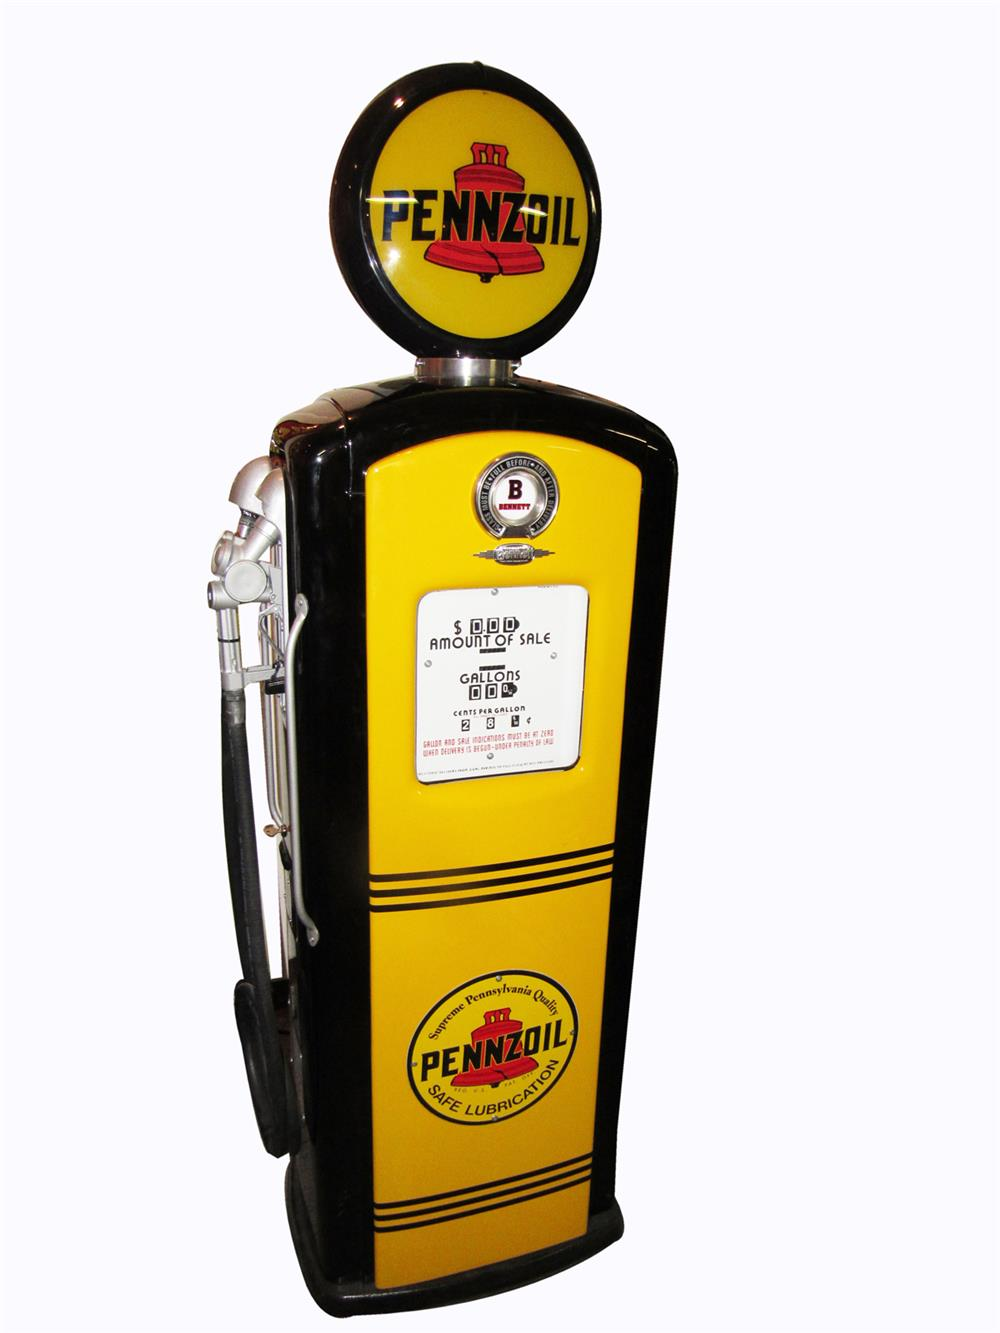 Magnificent early 1950s Pennzoil Gasoline Bennett model #766 restored service station gas pump. - Front 3/4 - 209178